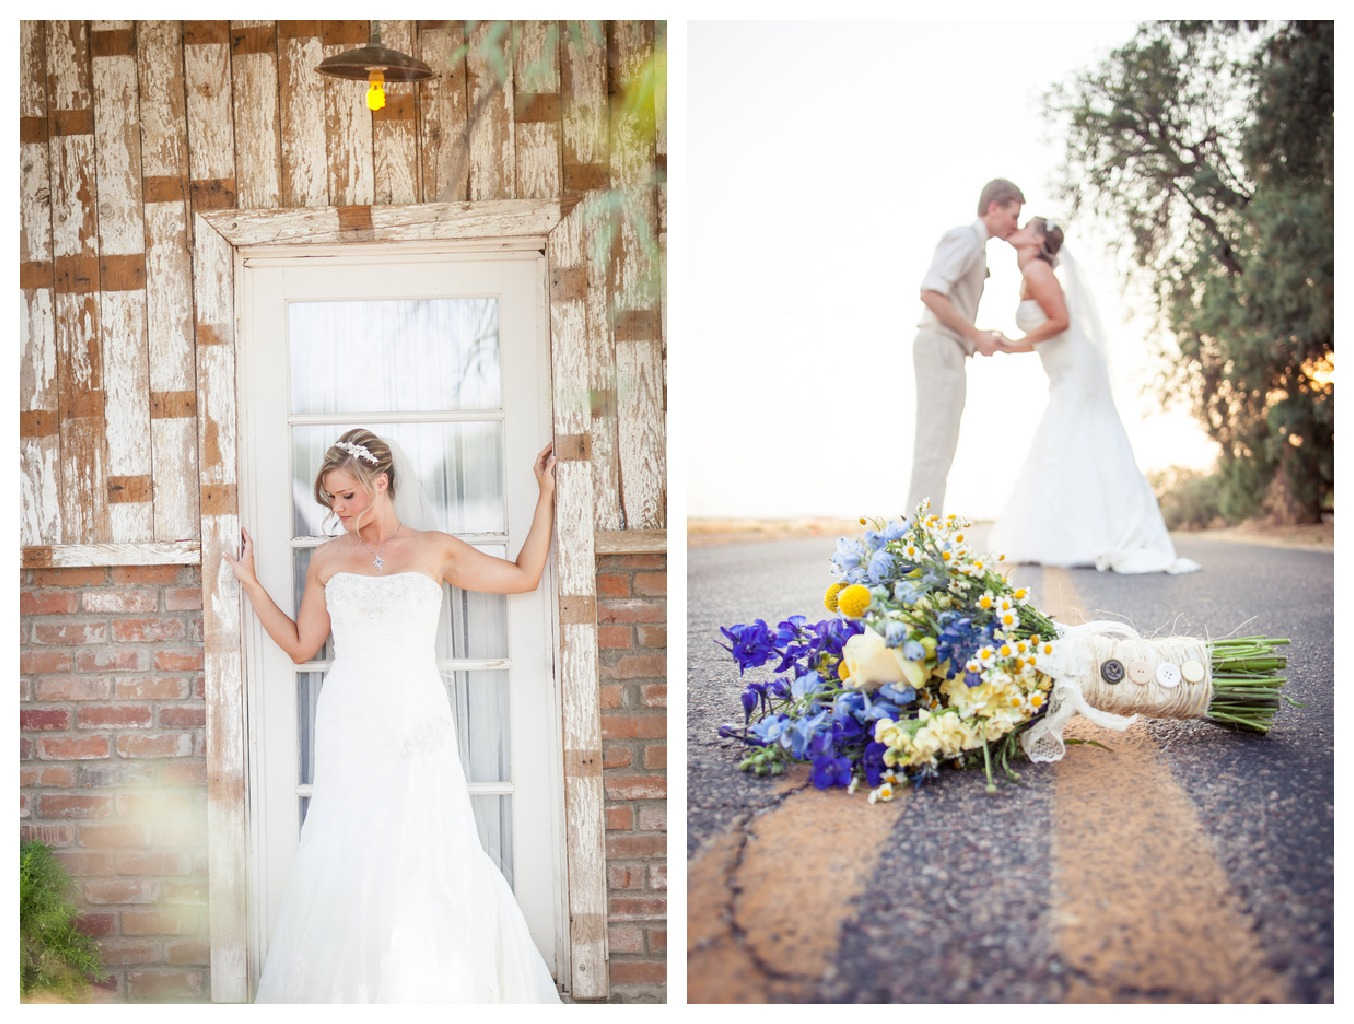 Arizona Country Wedding At The Windmill Winery - Rustic ... - photo#4